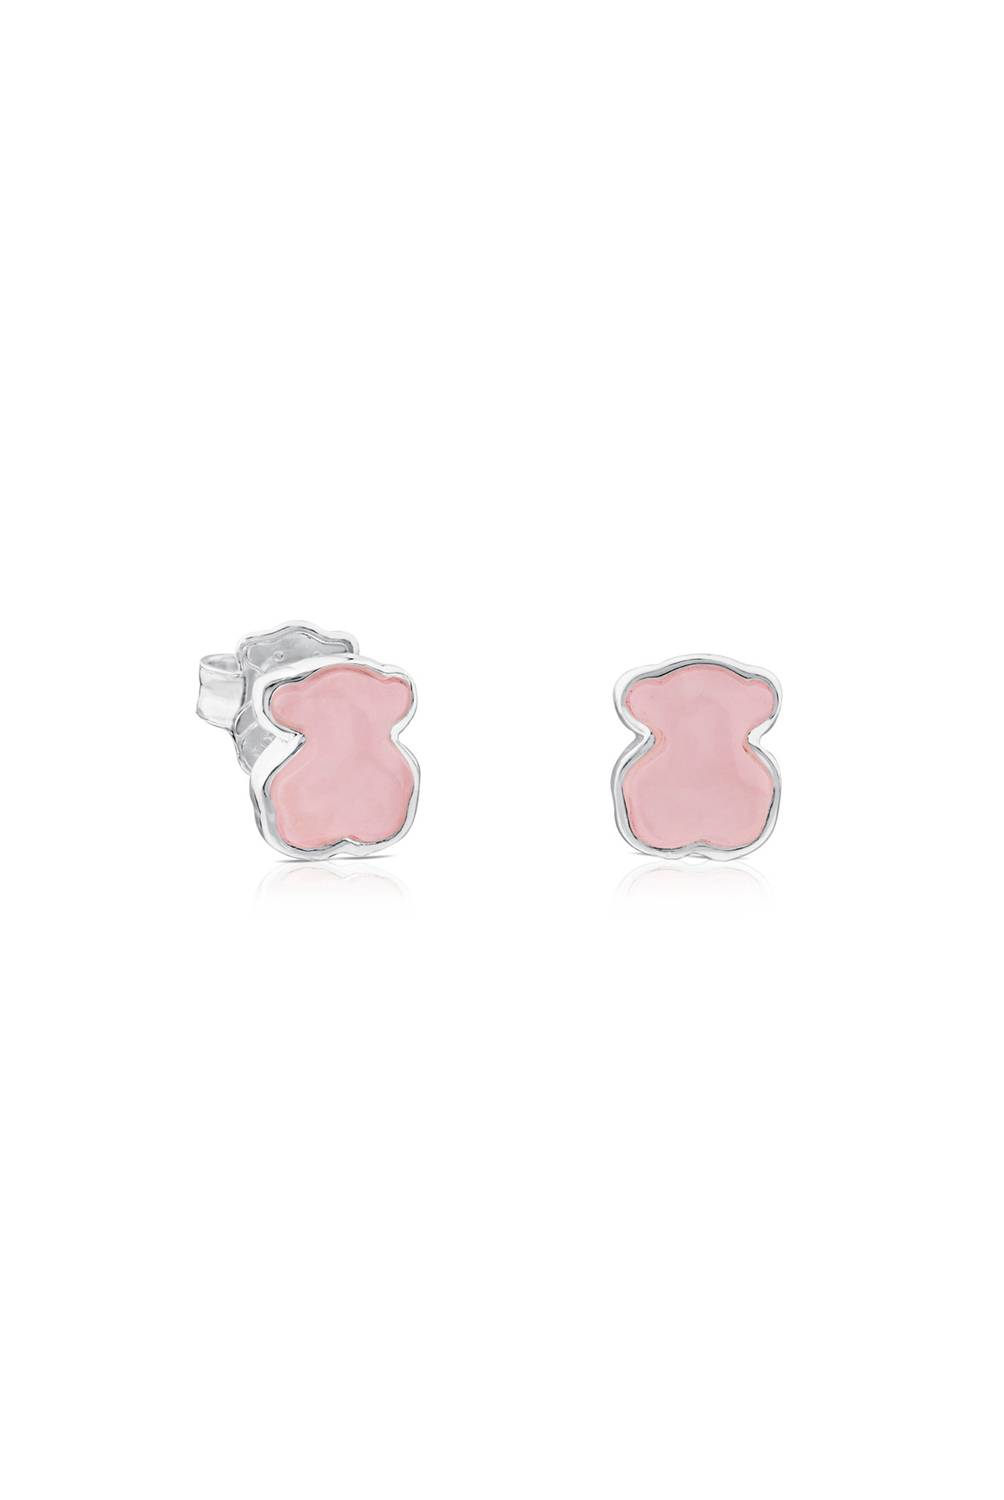 Tous - Aretes Tous New Color